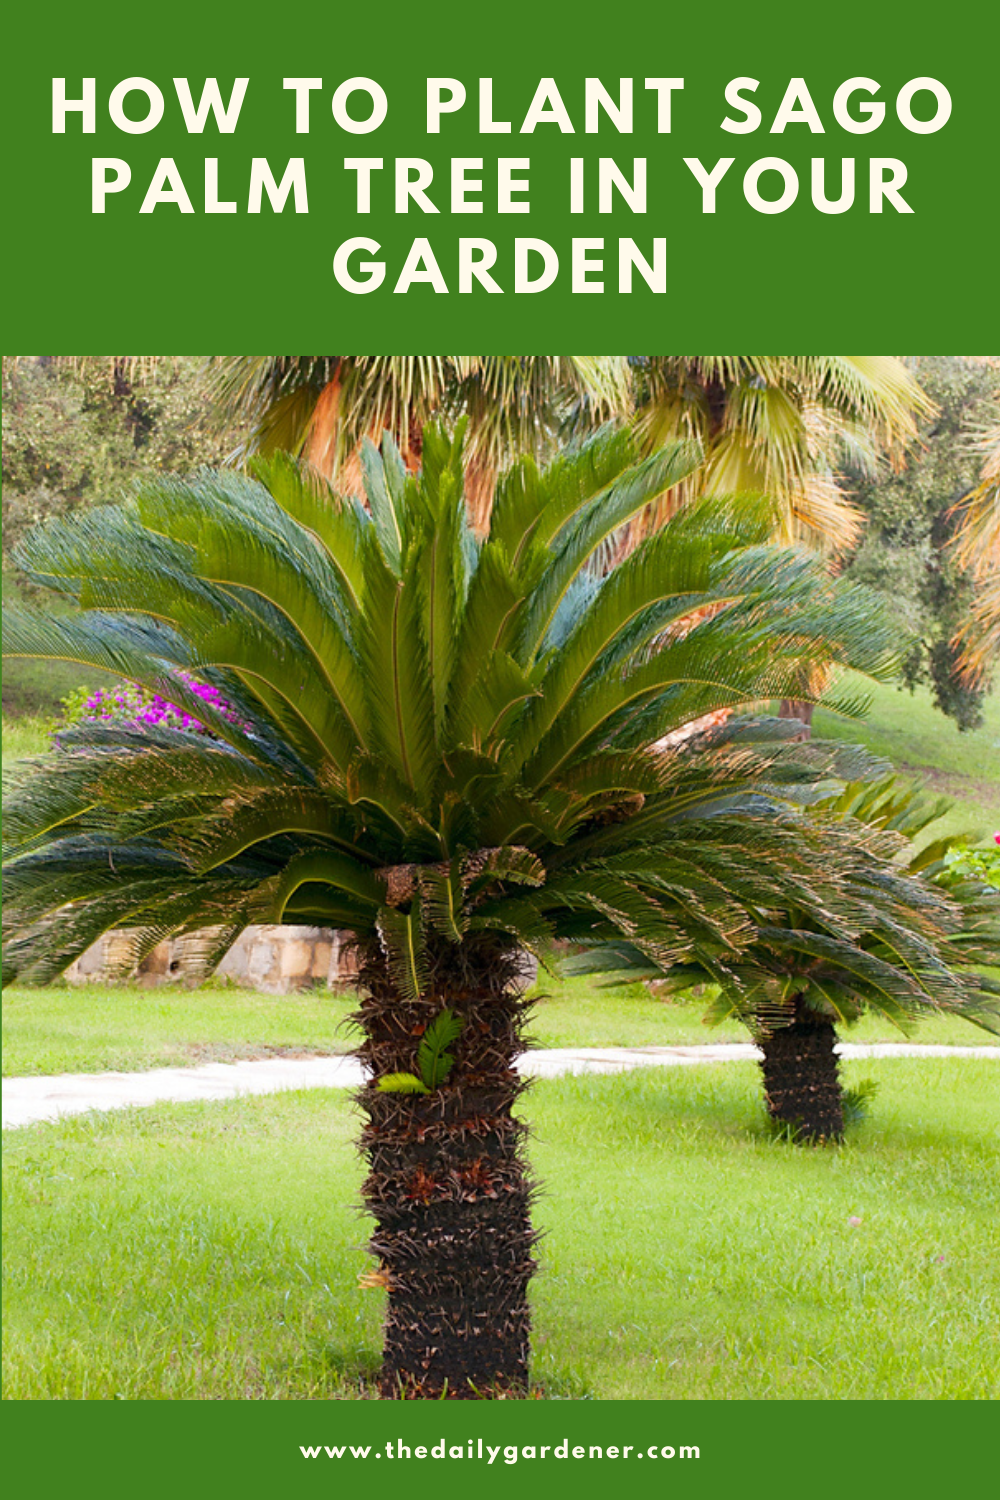 How to Plant Sago Palm Tree in Your Garden (Tricks to Care!) 2